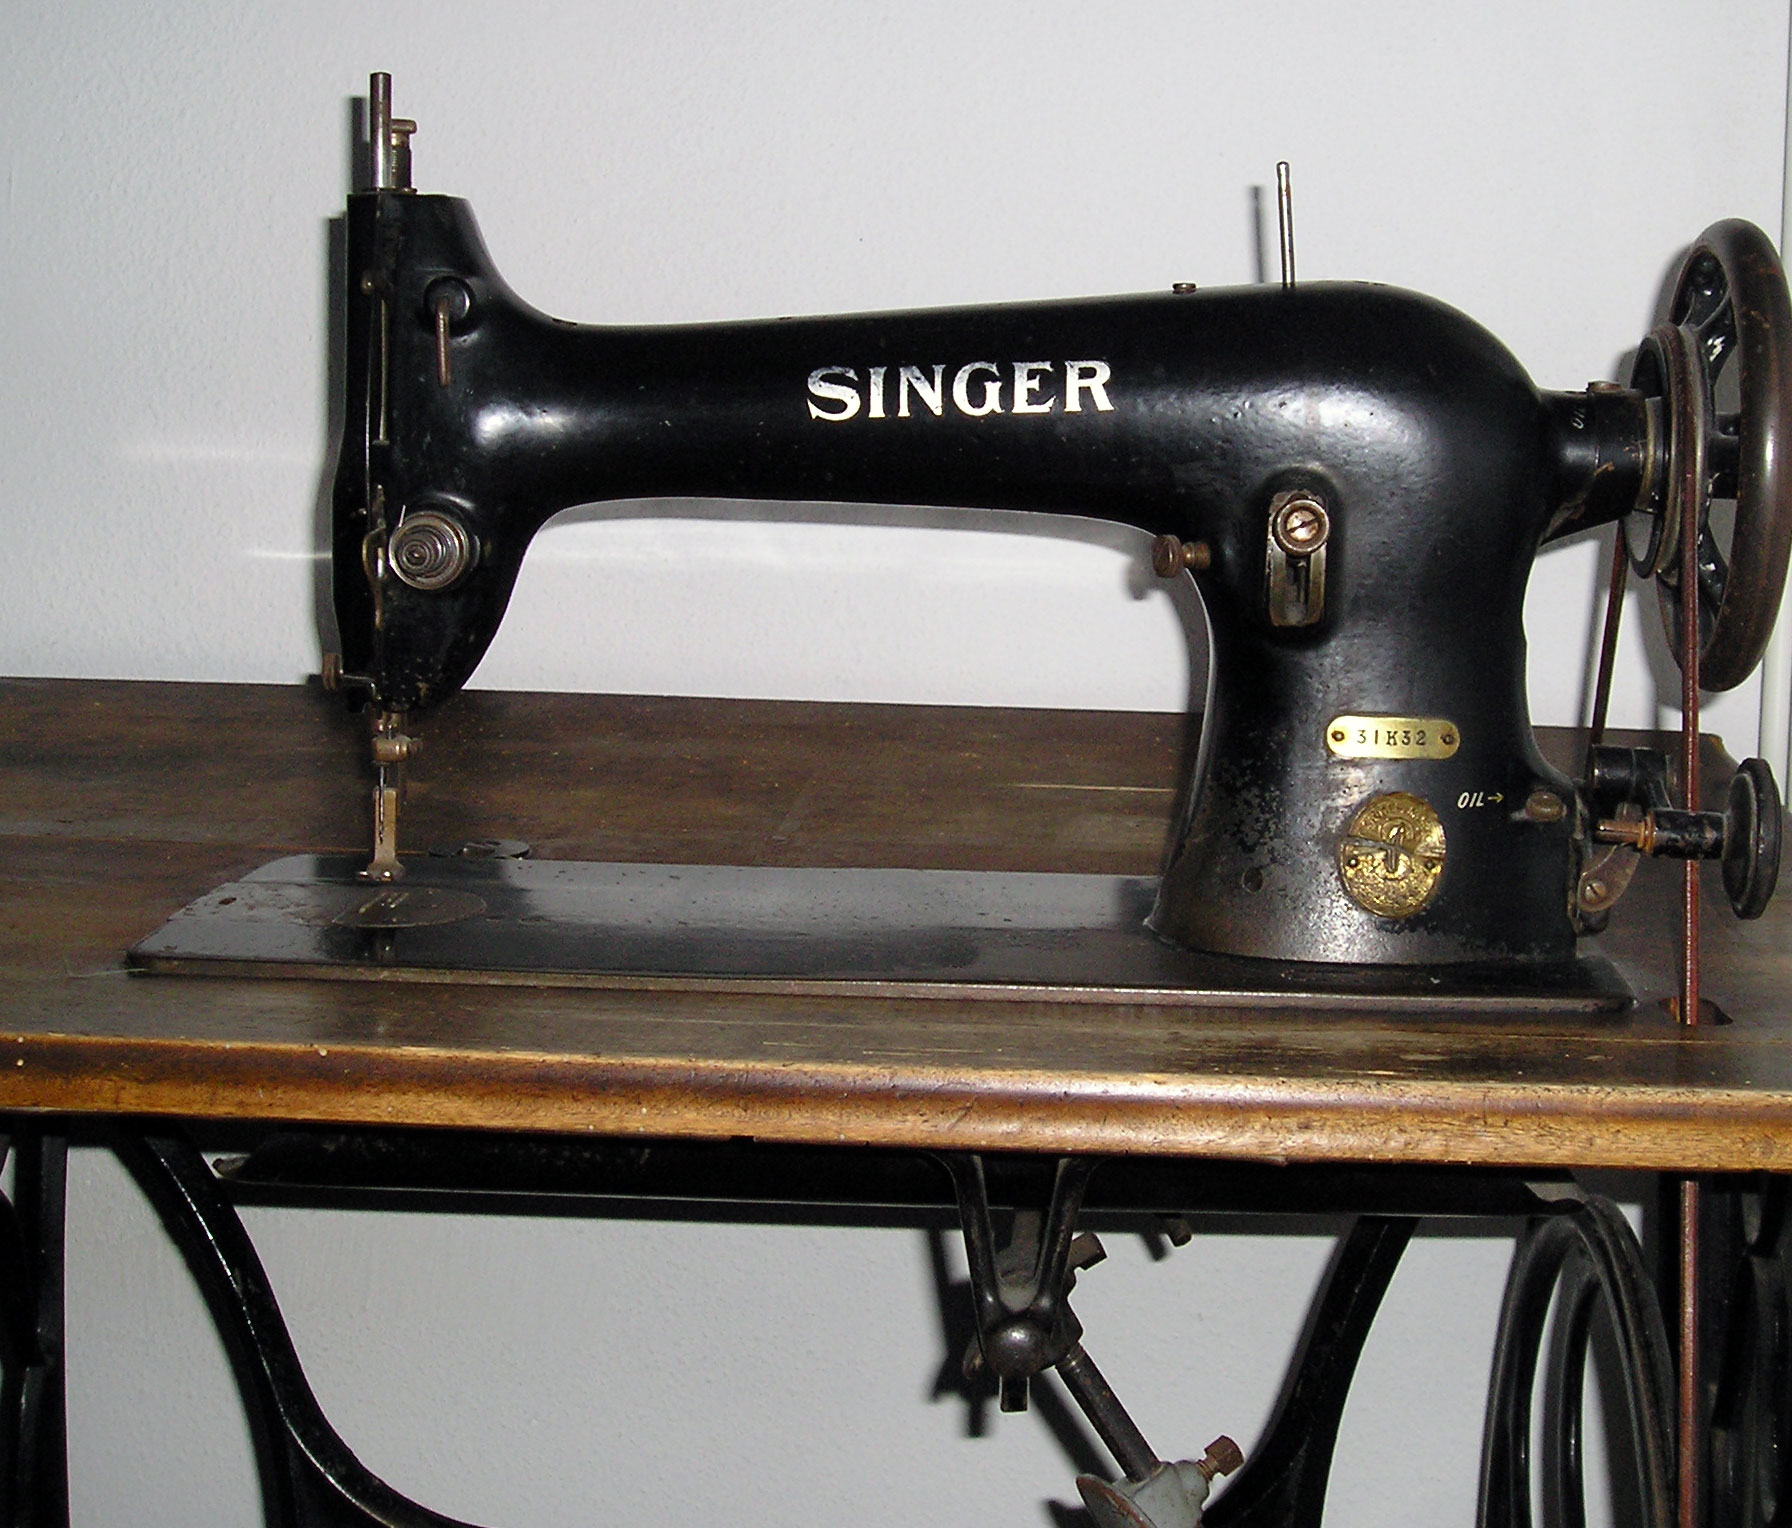 file singer sewing machine. Black Bedroom Furniture Sets. Home Design Ideas